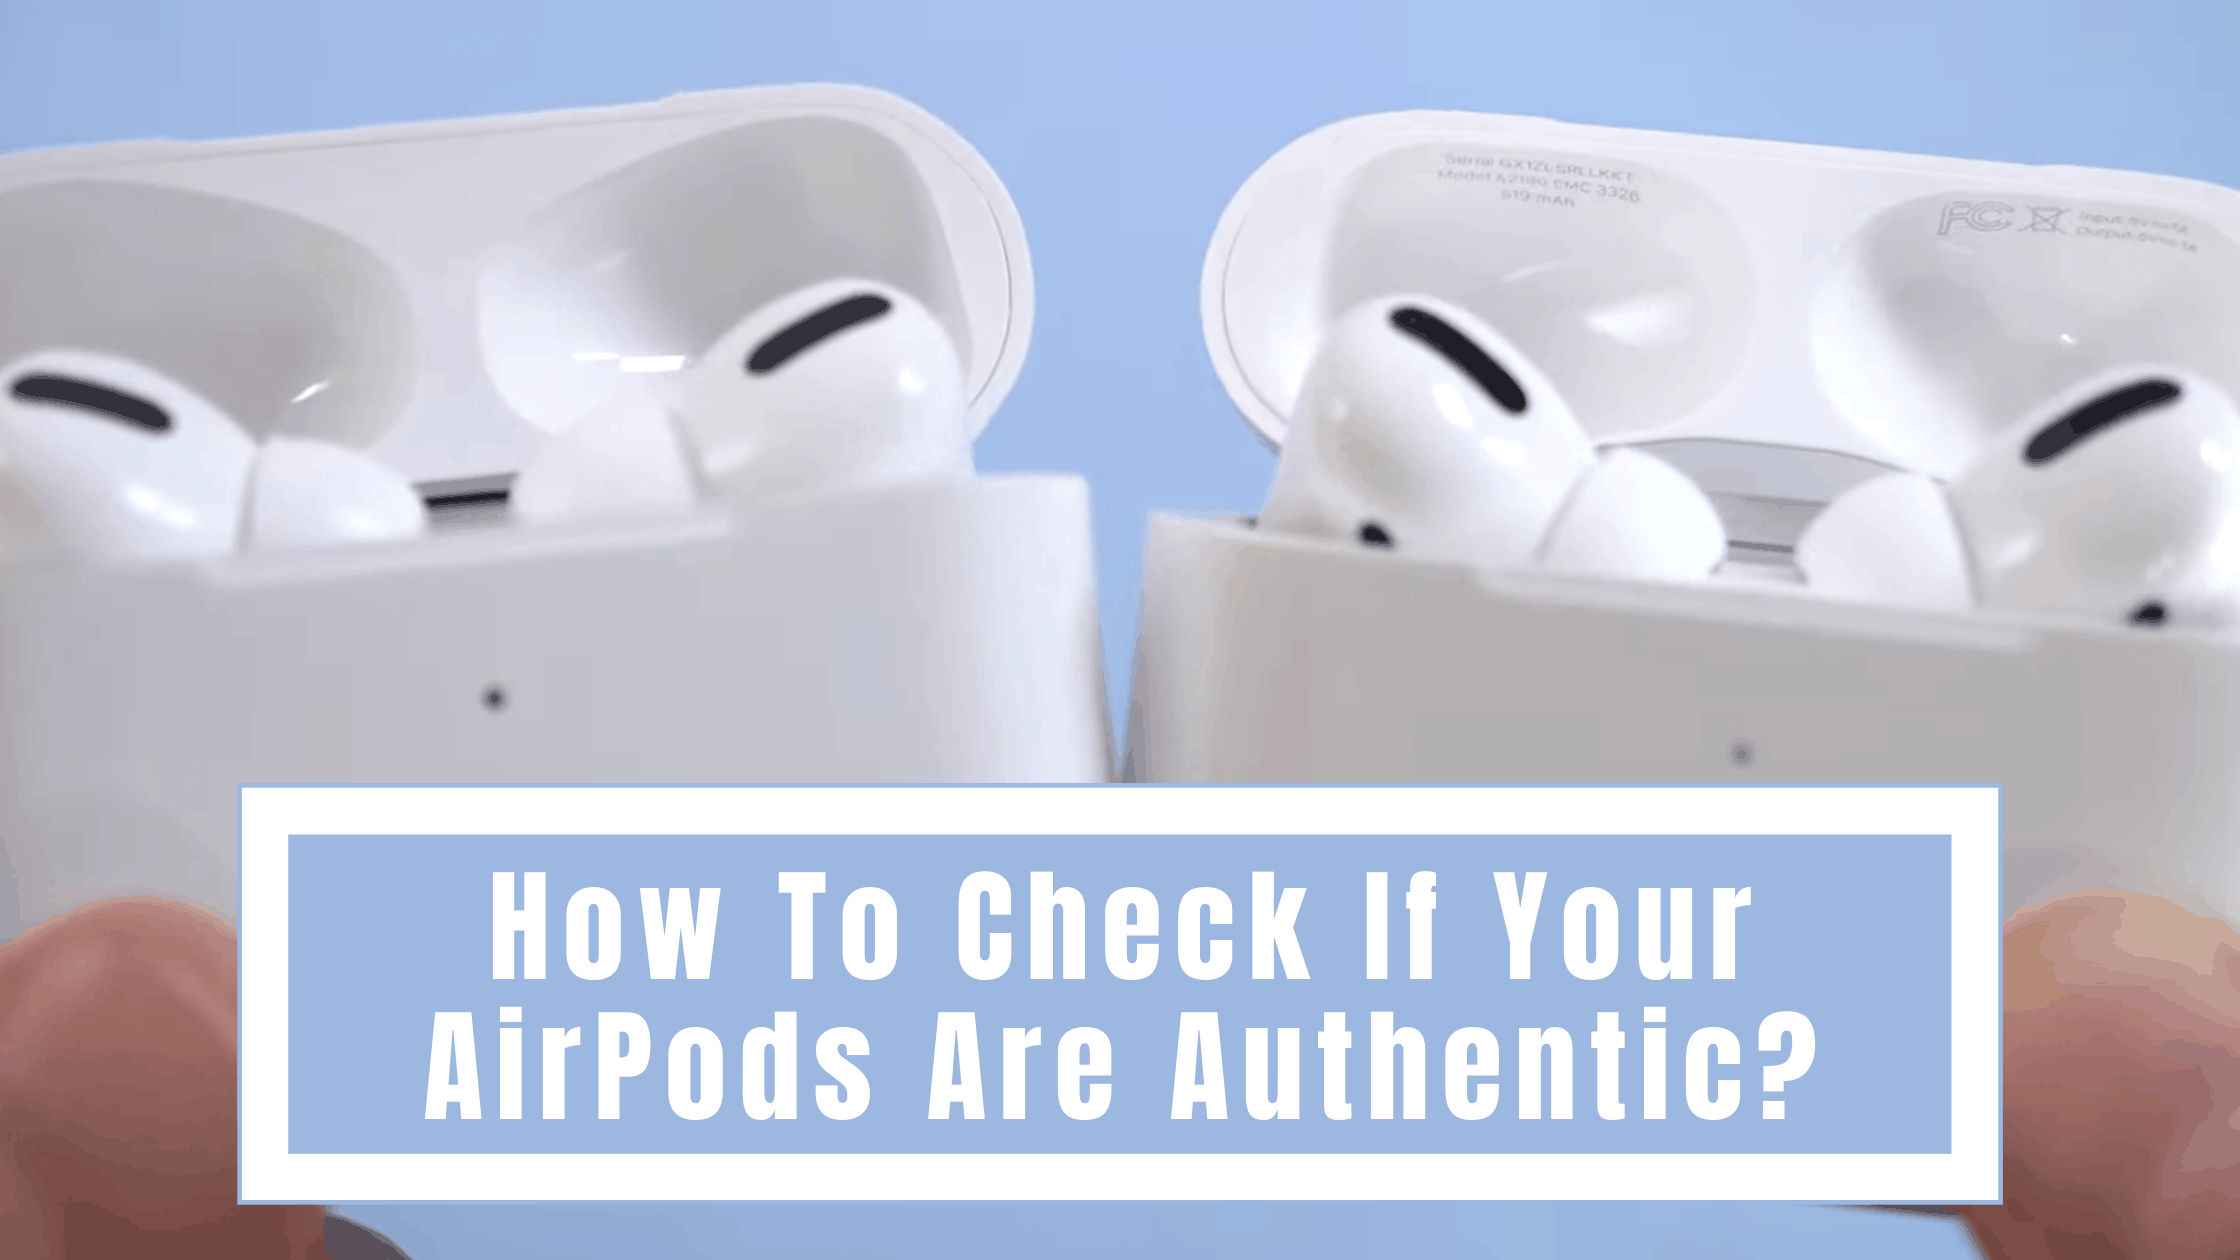 How To Check If Your Airpods Are Authentic 2021 Stupid Apple Rumors